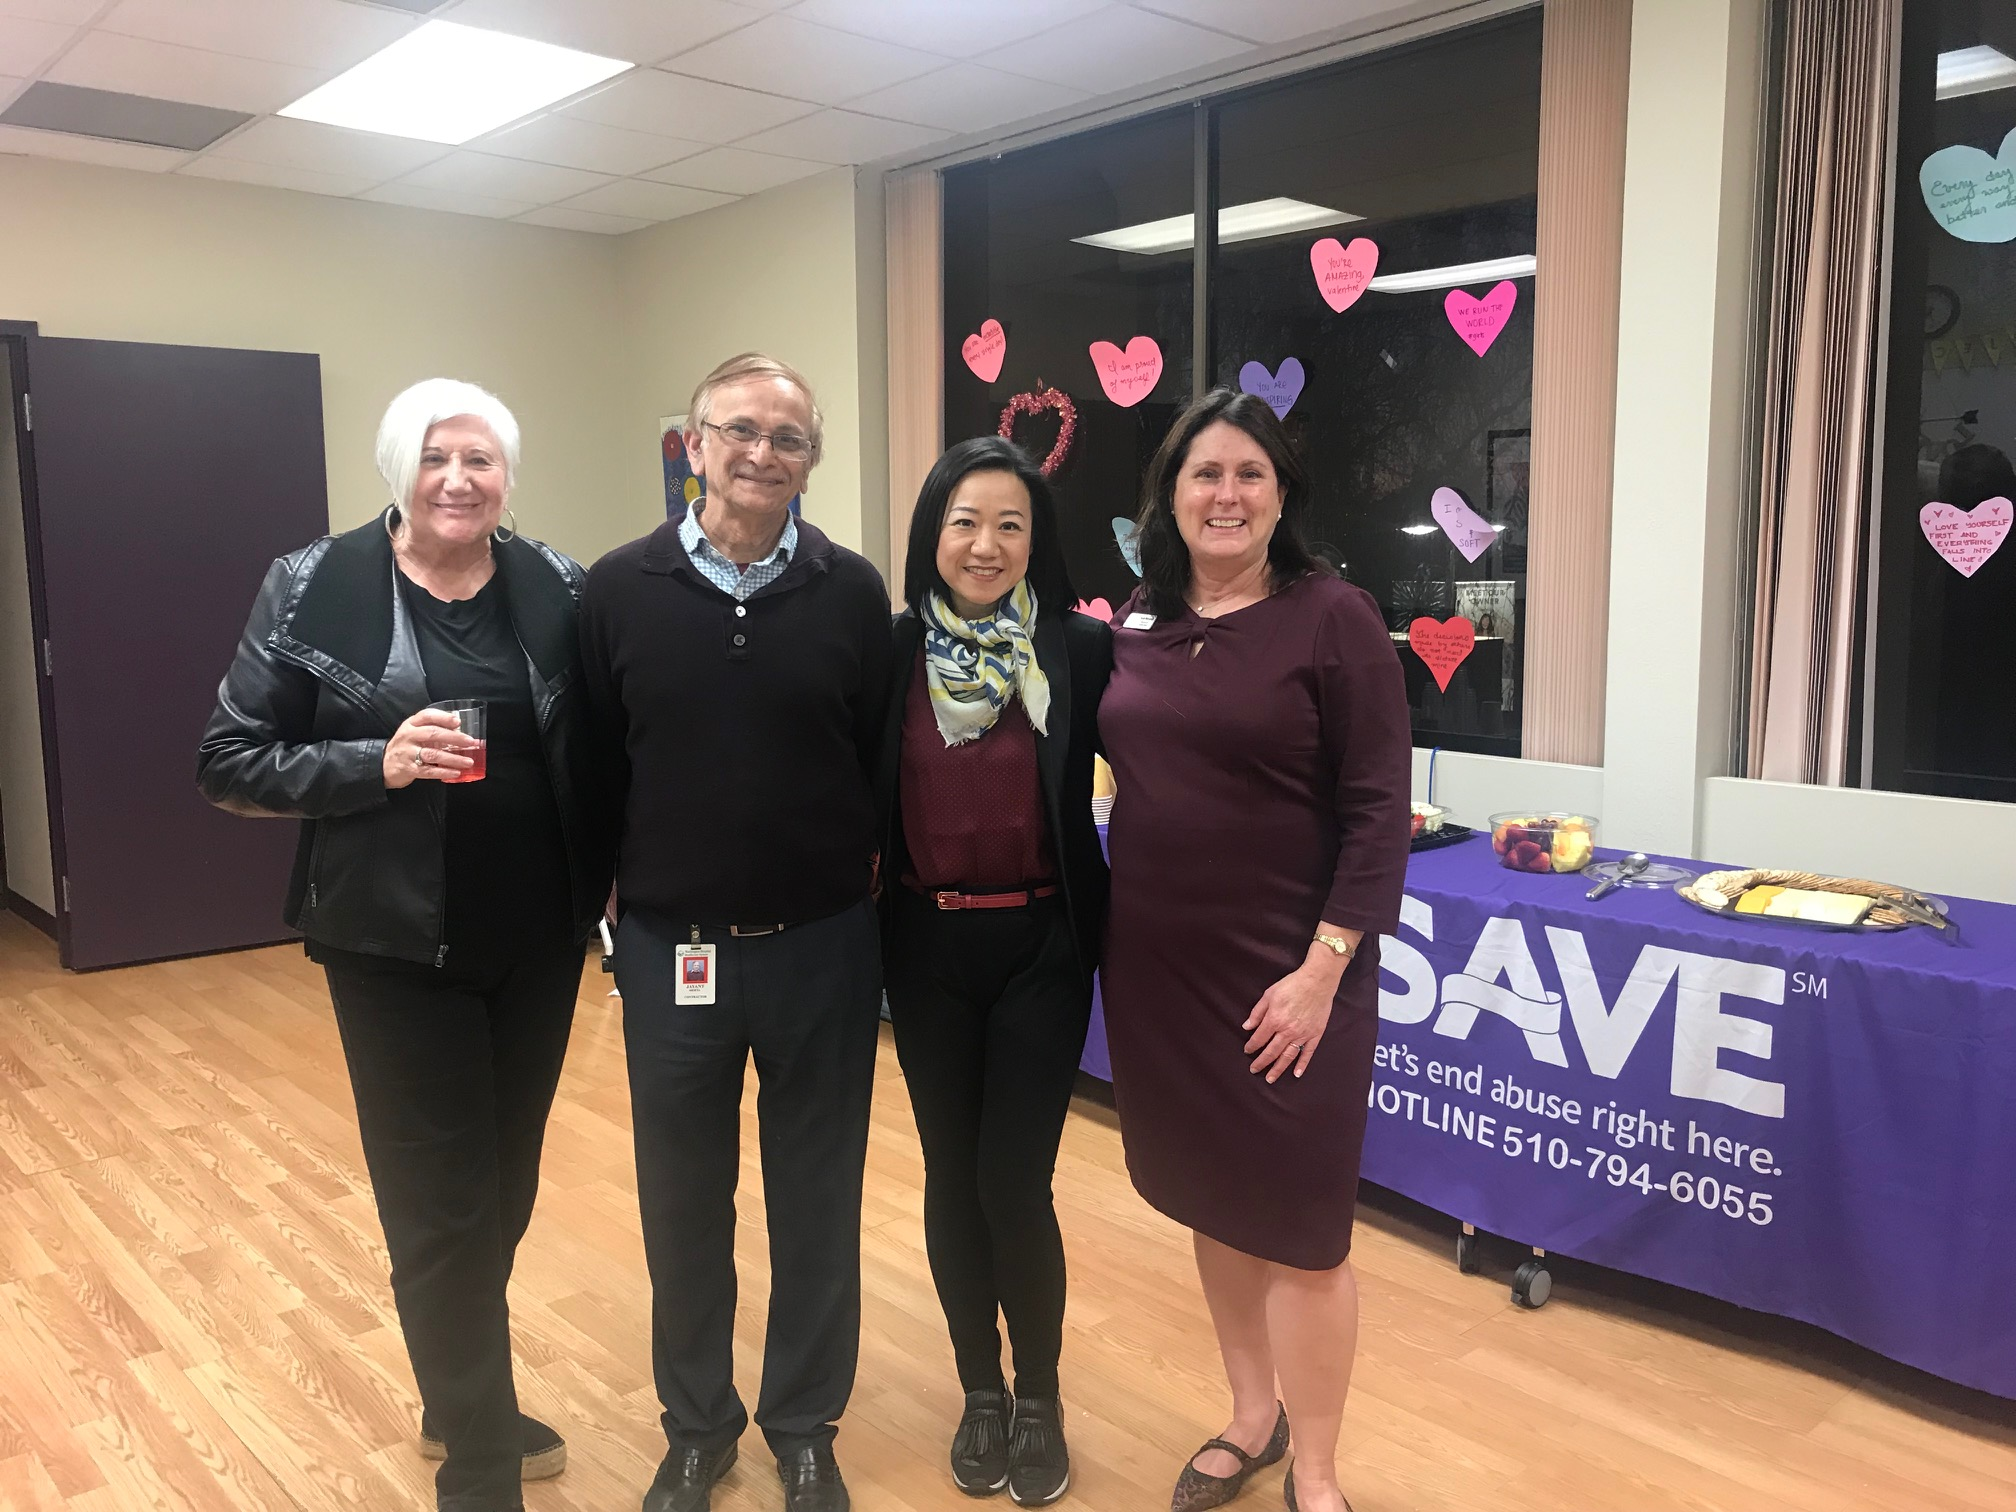 SAVE Supporter Appreciation Open House 2019: (L-R) Board Member, Sybil, Finance Director, Jayant, Fridaze Owner, Joyce Tang, and Program Director, Paula.